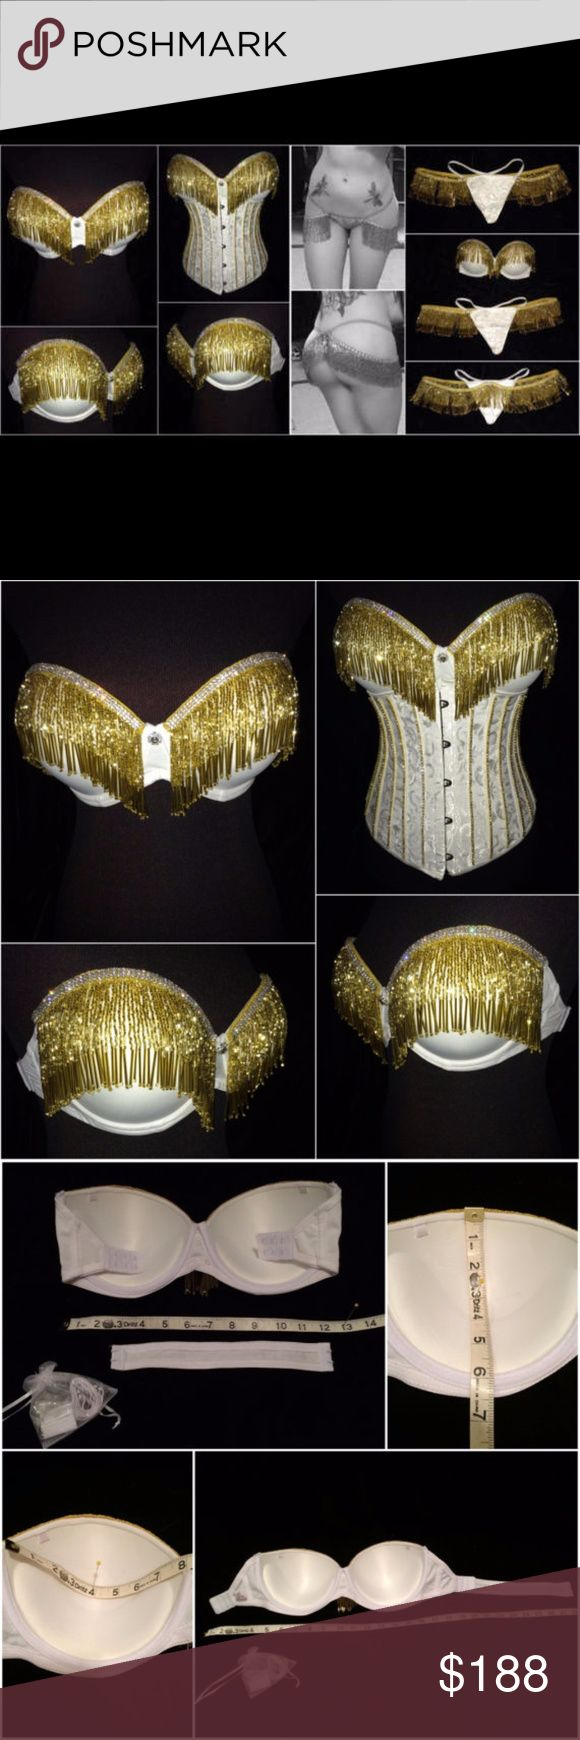 """White Gold Beaded Fringe Crystal Bra and Thong Set Size 36D  please see picture for measurements.  Features clasps on both sides for easy removal. Also comes with removable halter style strap both clear and white as well as a clear attachment for the back piece.  Thong  Features a clasp on the front of either side to attach the fringe.  Size sm/med  The actual thong measures about 7"""" along the top, 7"""" down the center. The side straps on either side are about 8.5"""" and stretch to about 17""""…"""